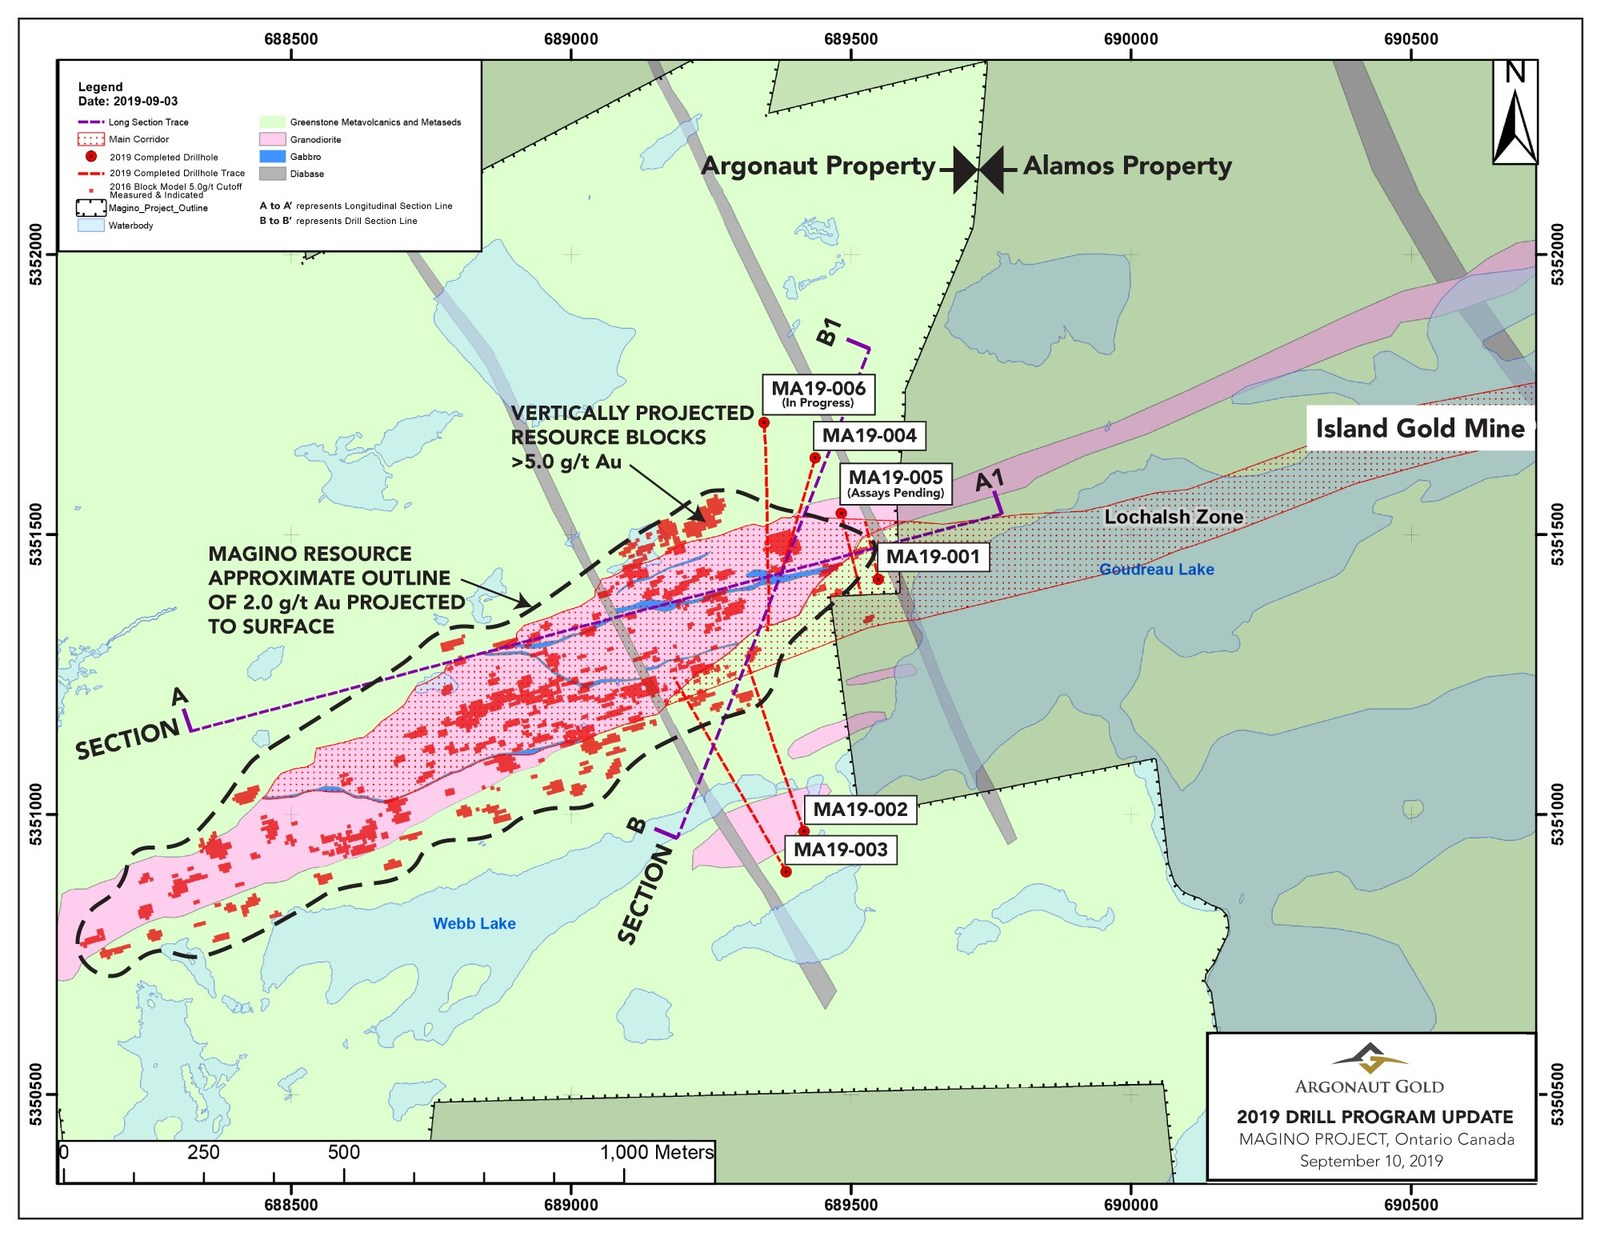 A geological map of the Magino Project located approximately 14 kilometres southeast of Dubreuilville, Ontario, adjacent to the Island Gold Mine. The map shows key drillhole locations from our recent drilling program.